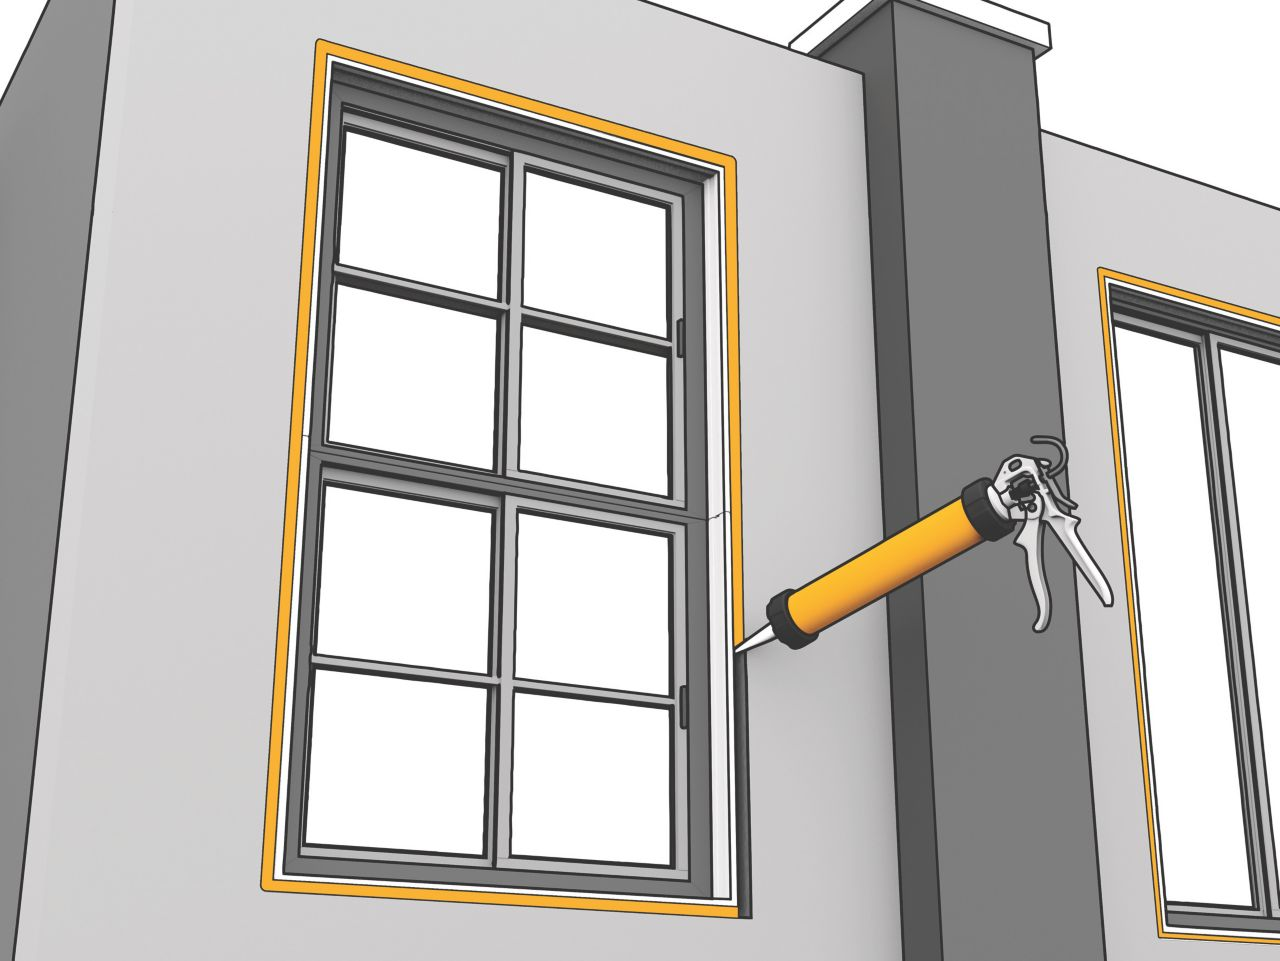 Application of Sika connection joints for windows installation